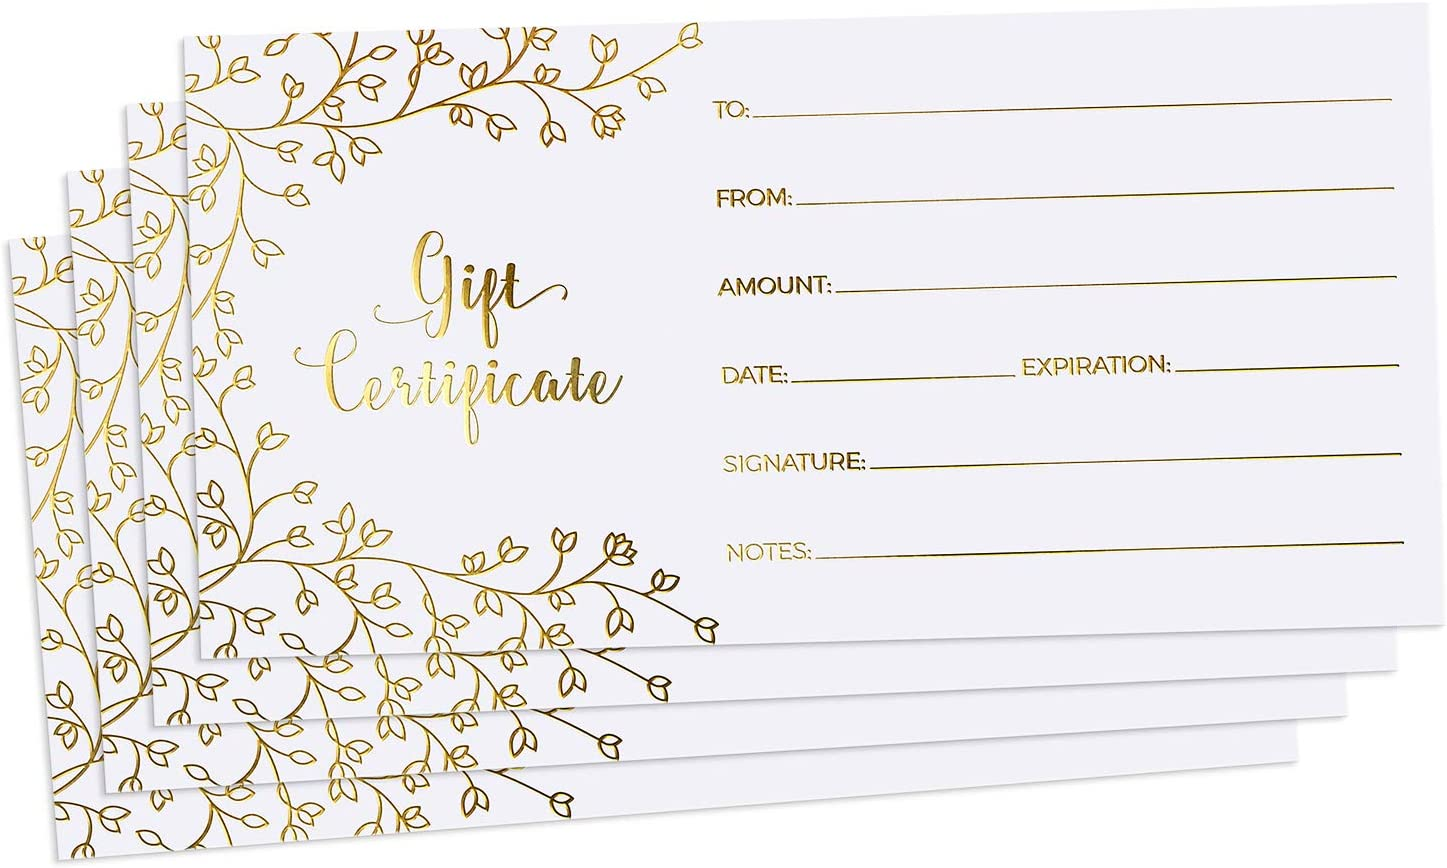 """Blank Gift Certificates for Business - 25 Gold Foil Gift Certificate Cards with Envelopes for Spa, Salon, Restaurants, Custom Client Vouchers for Birthday, Work Gift Card - 3.75x7.5"""""""